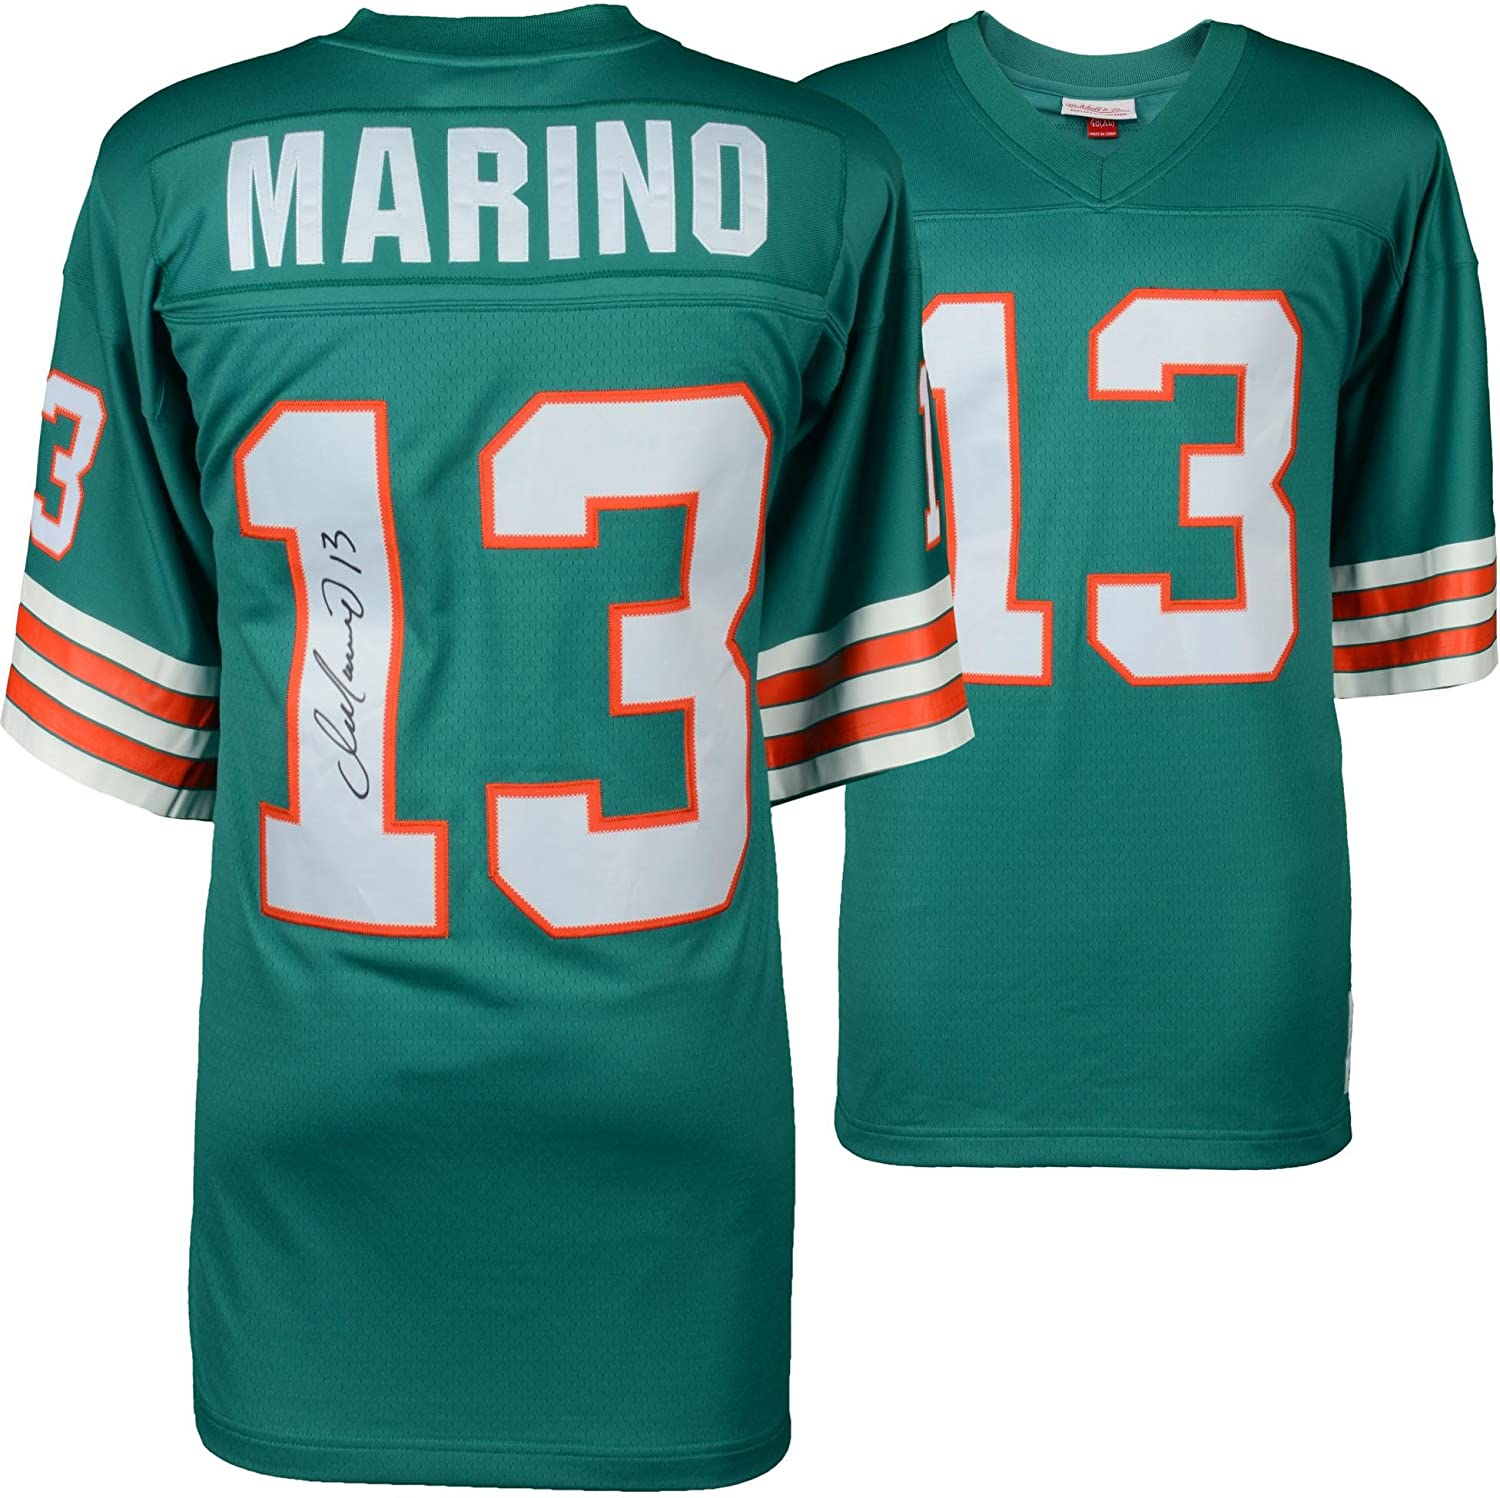 Dan Marino Miami Dolphins Autographed Mitchell & Ness Teal Replica Jersey - Autographed NFL Jerseys